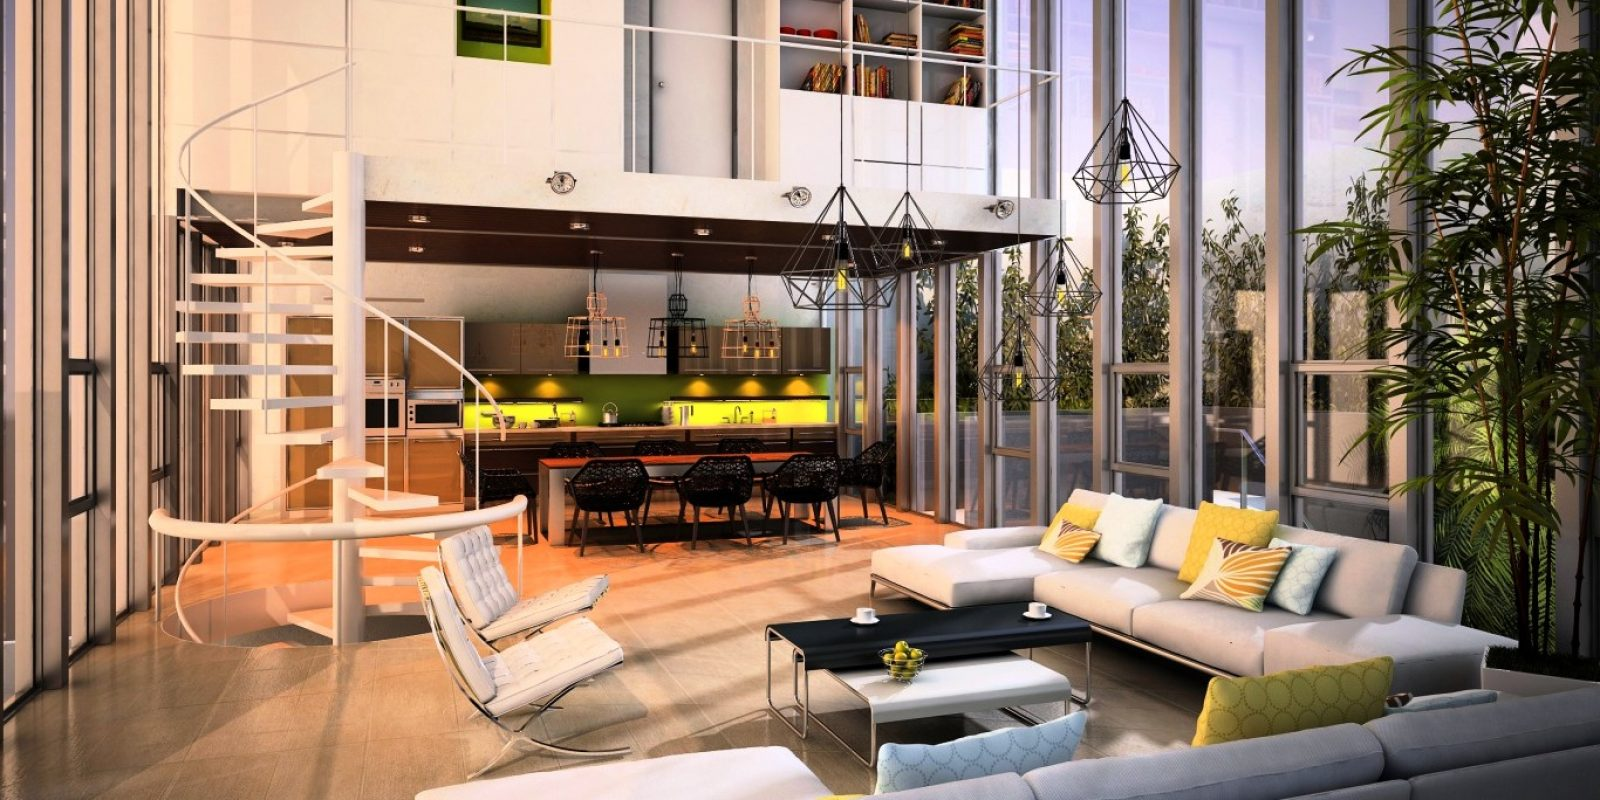 cropped interior design living dizayn 3342 - cropped-interior-design-living-dizayn-3342.jpg